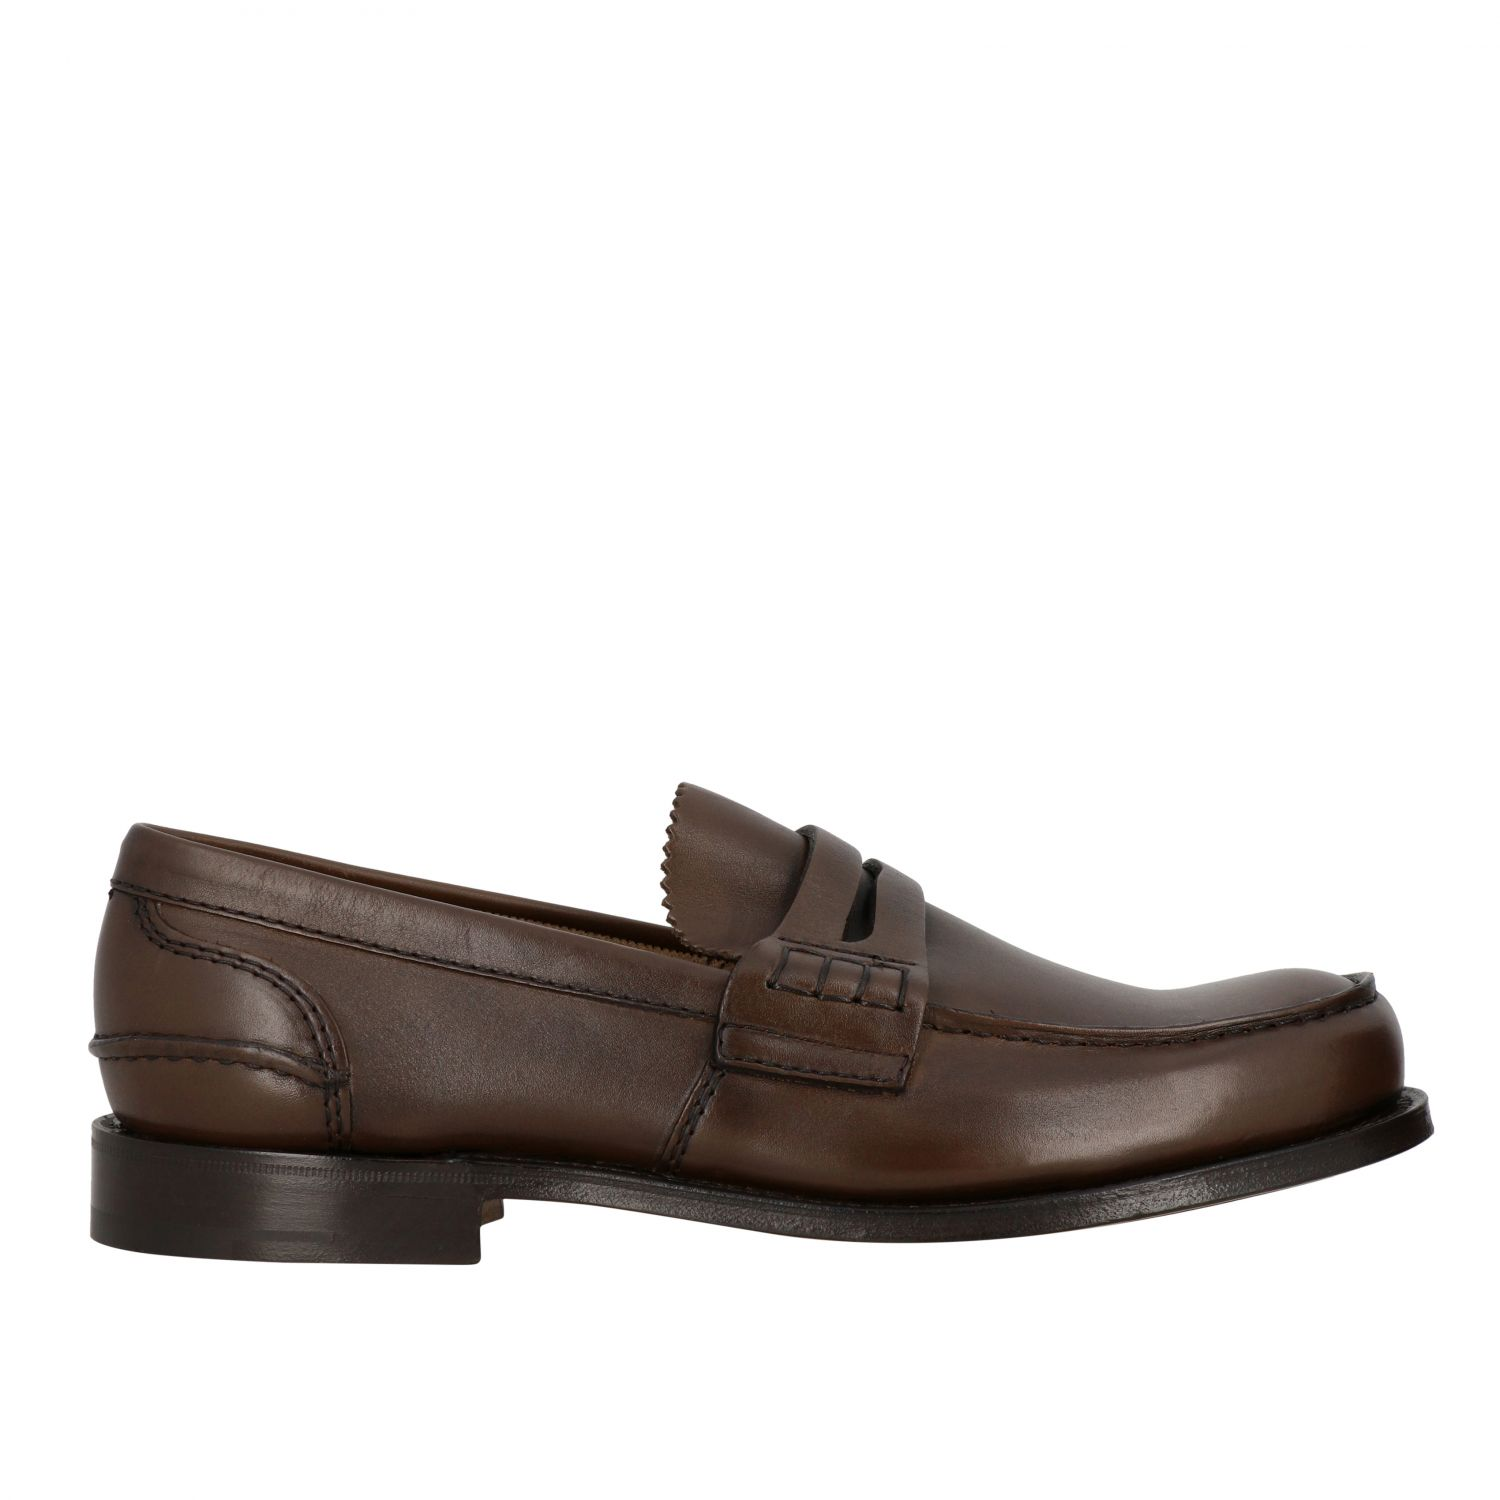 Loafers Church's: Pembrey Church's leather loafer honey 1